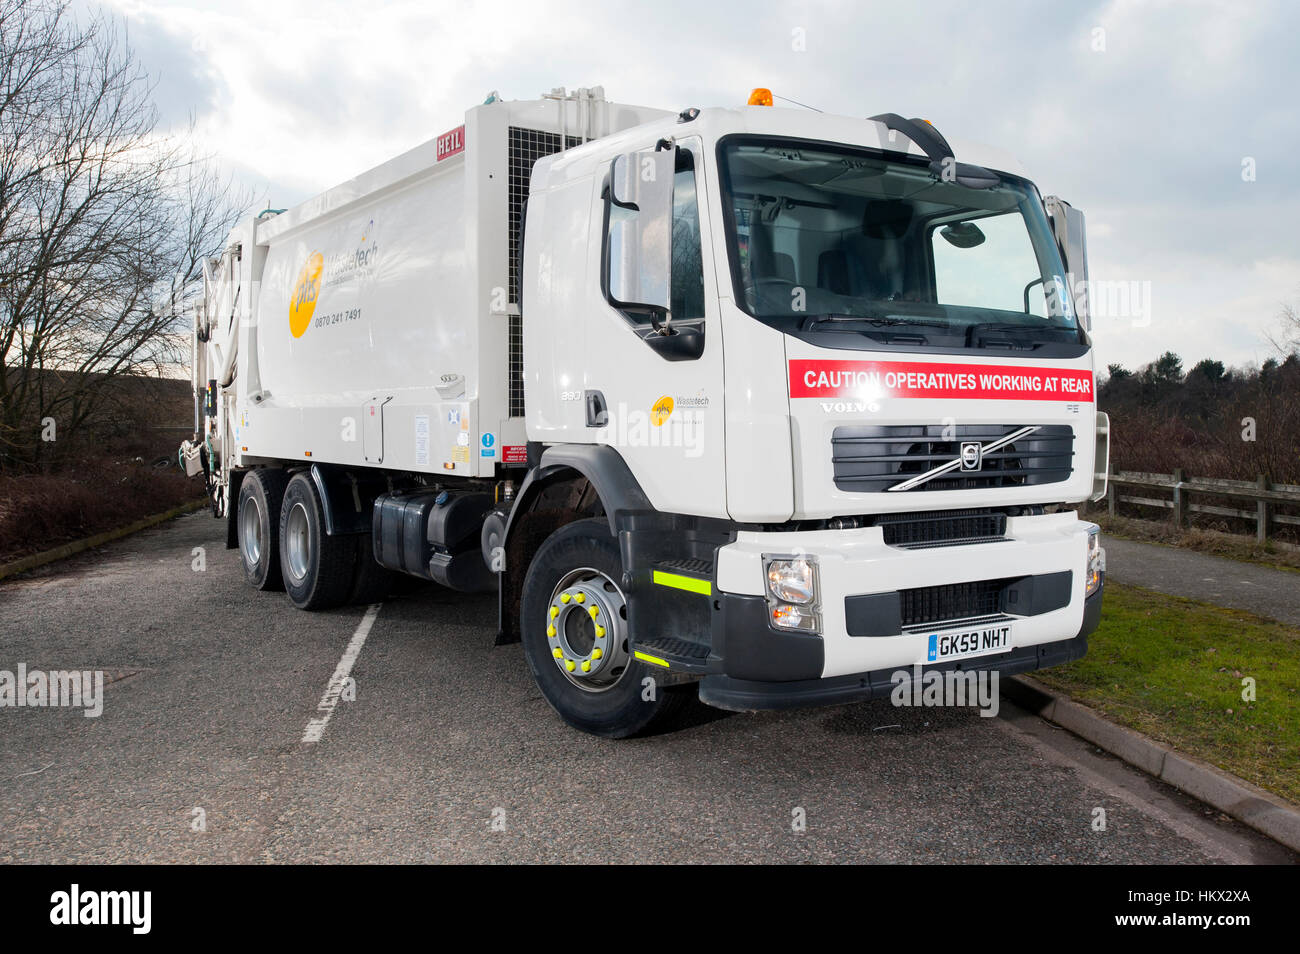 2009 Volvo FE dustcart refuse collection truck - Stock Image